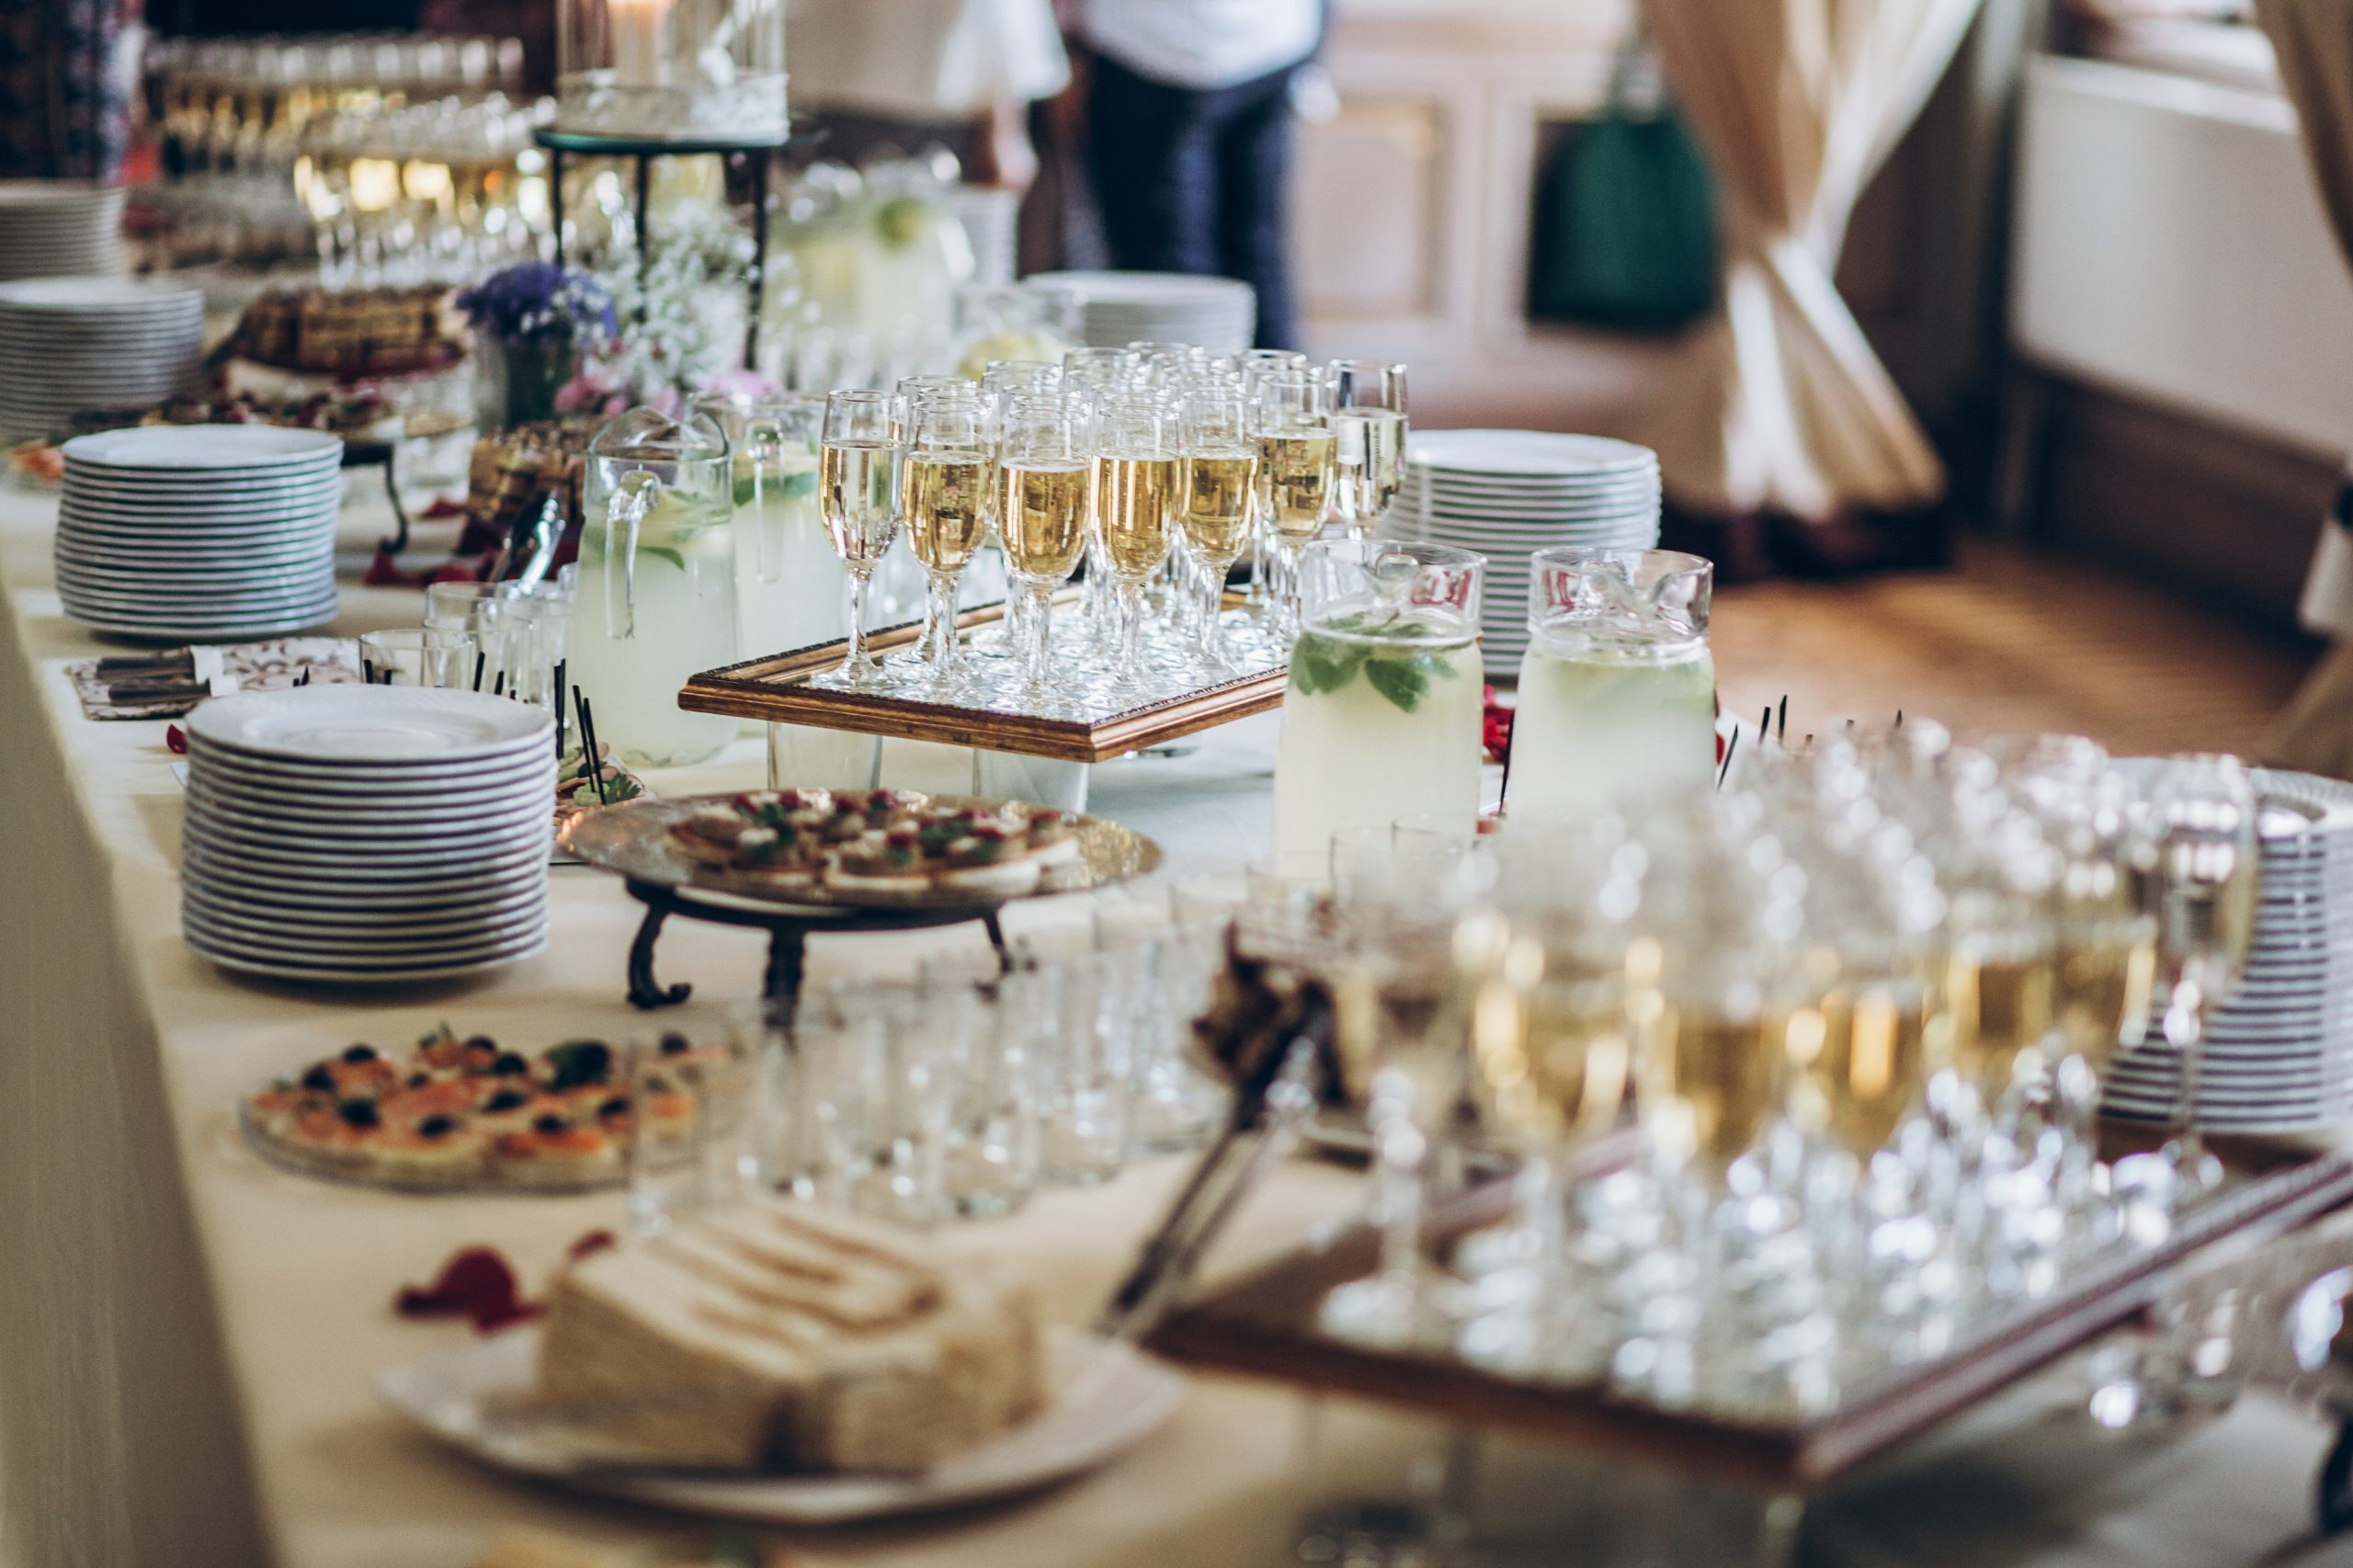 Stylish champagne glasses and food  appetizers on table at weddi